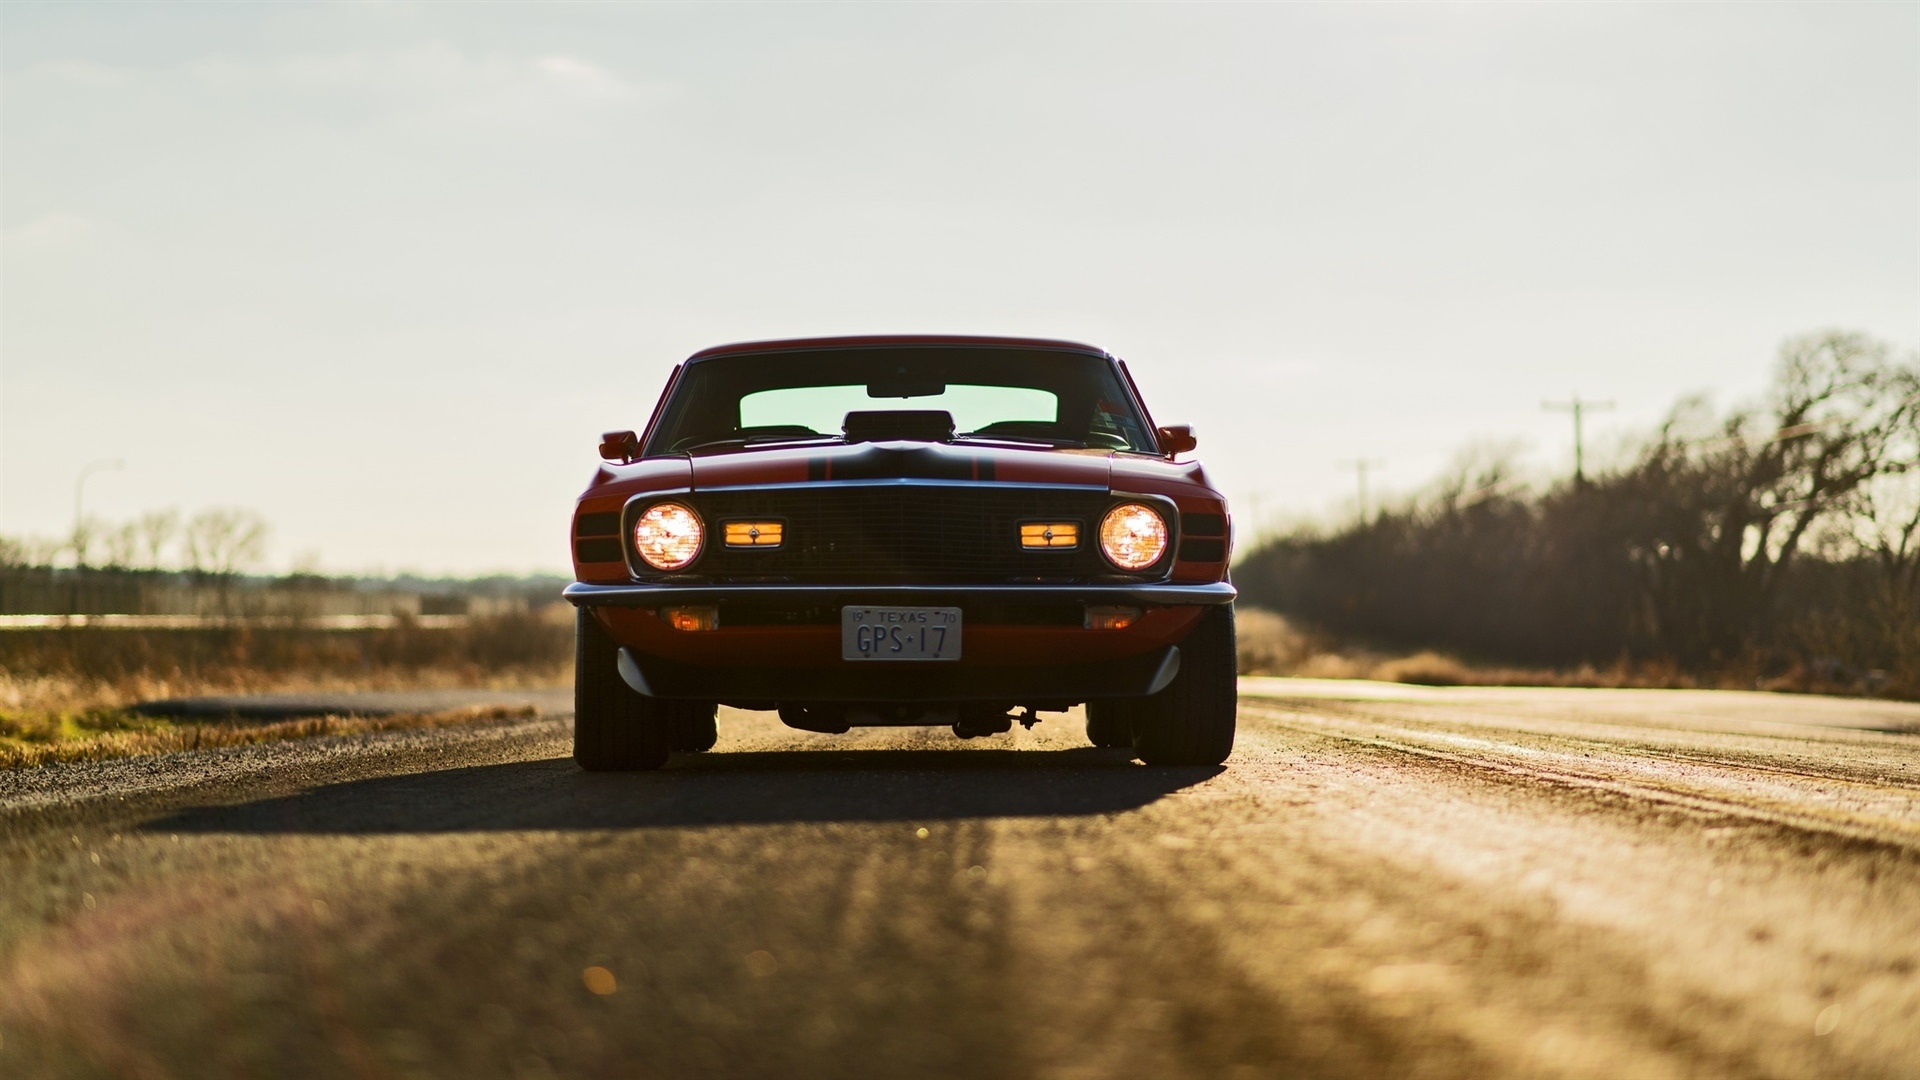 Wallpaper Ford Mustang Mach 1 Car Front View 1920x1080 Full Hd 2k